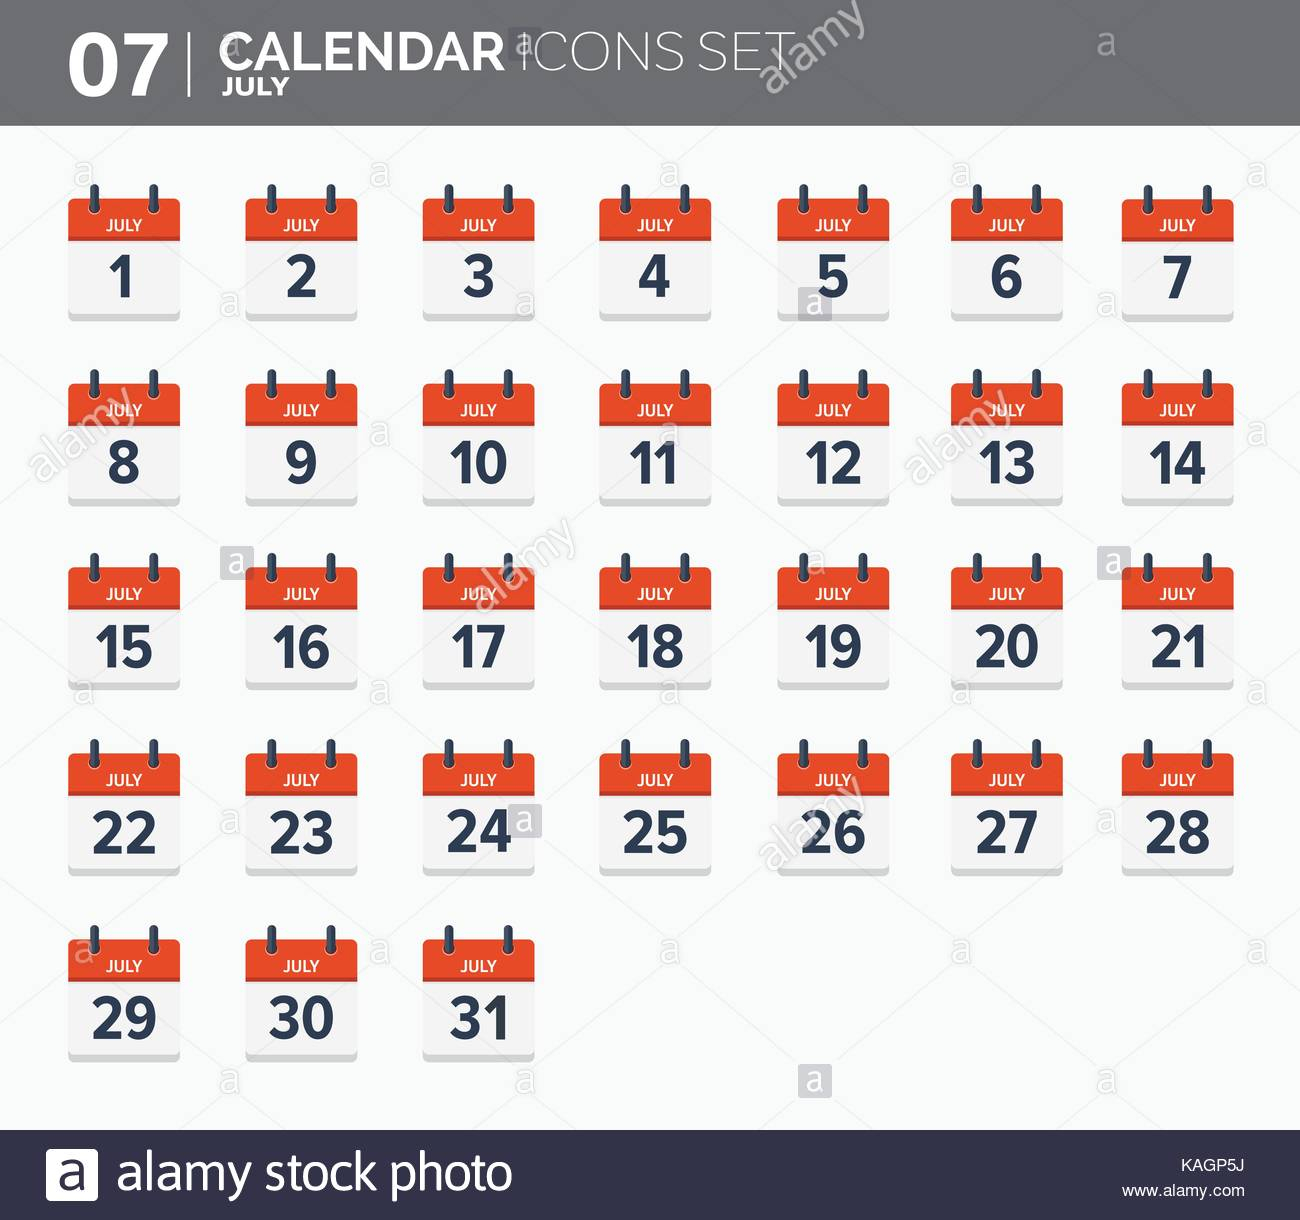 July. Calendar Icons Set. Date And Time. 2018 Year Stock